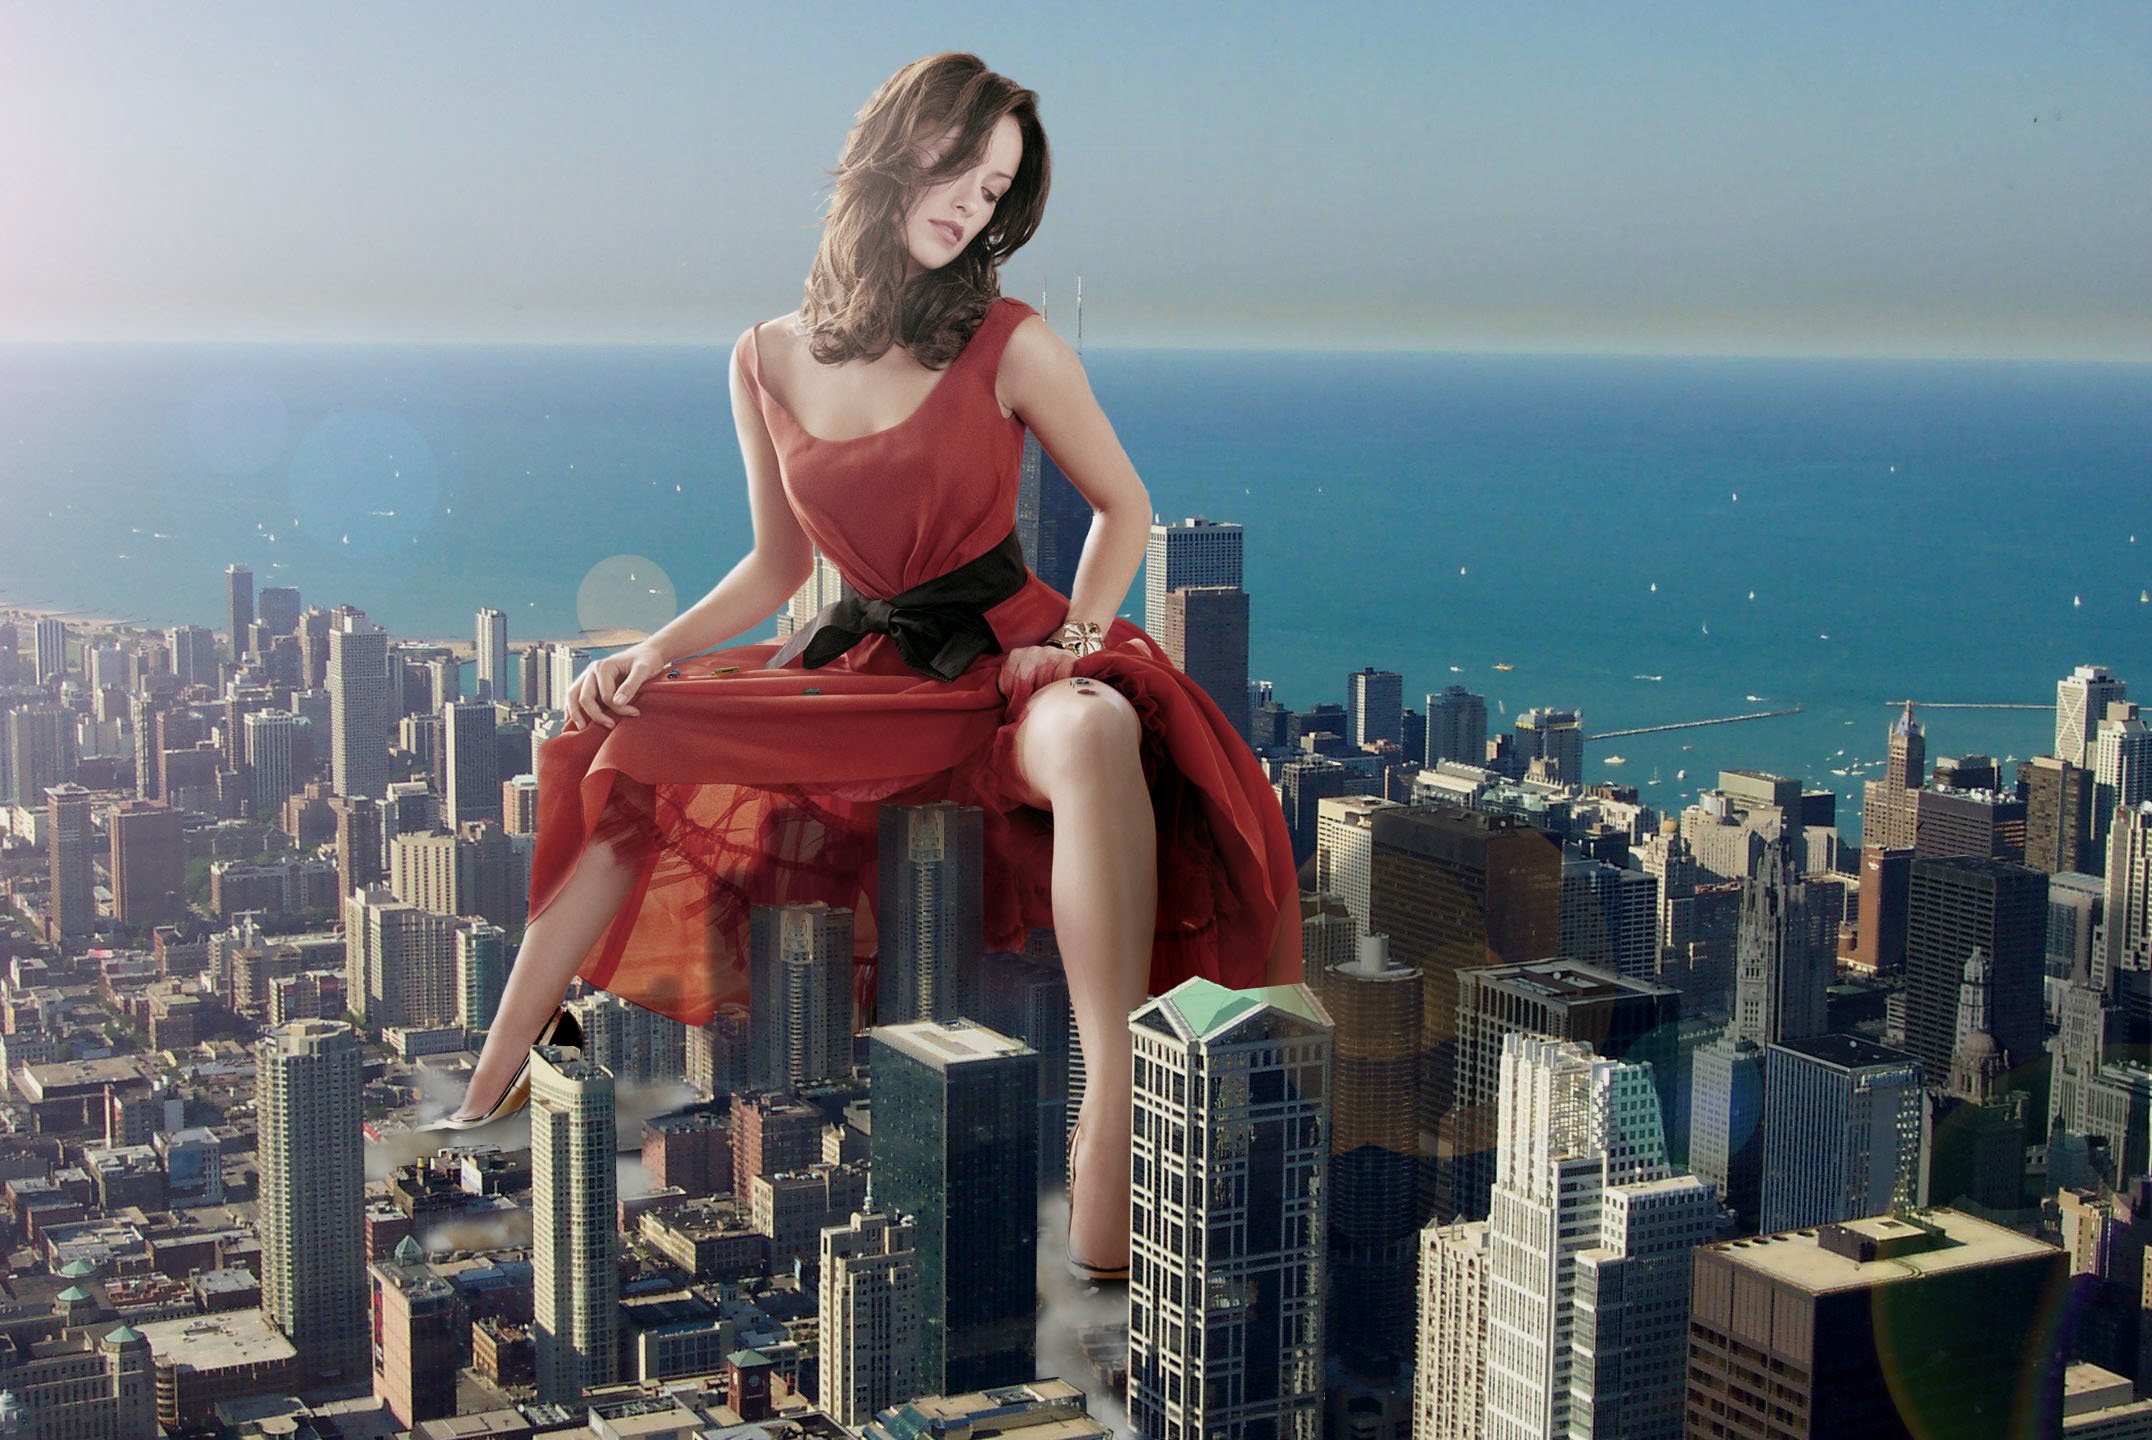 giant woman Photo manipulation HD Wallpaper